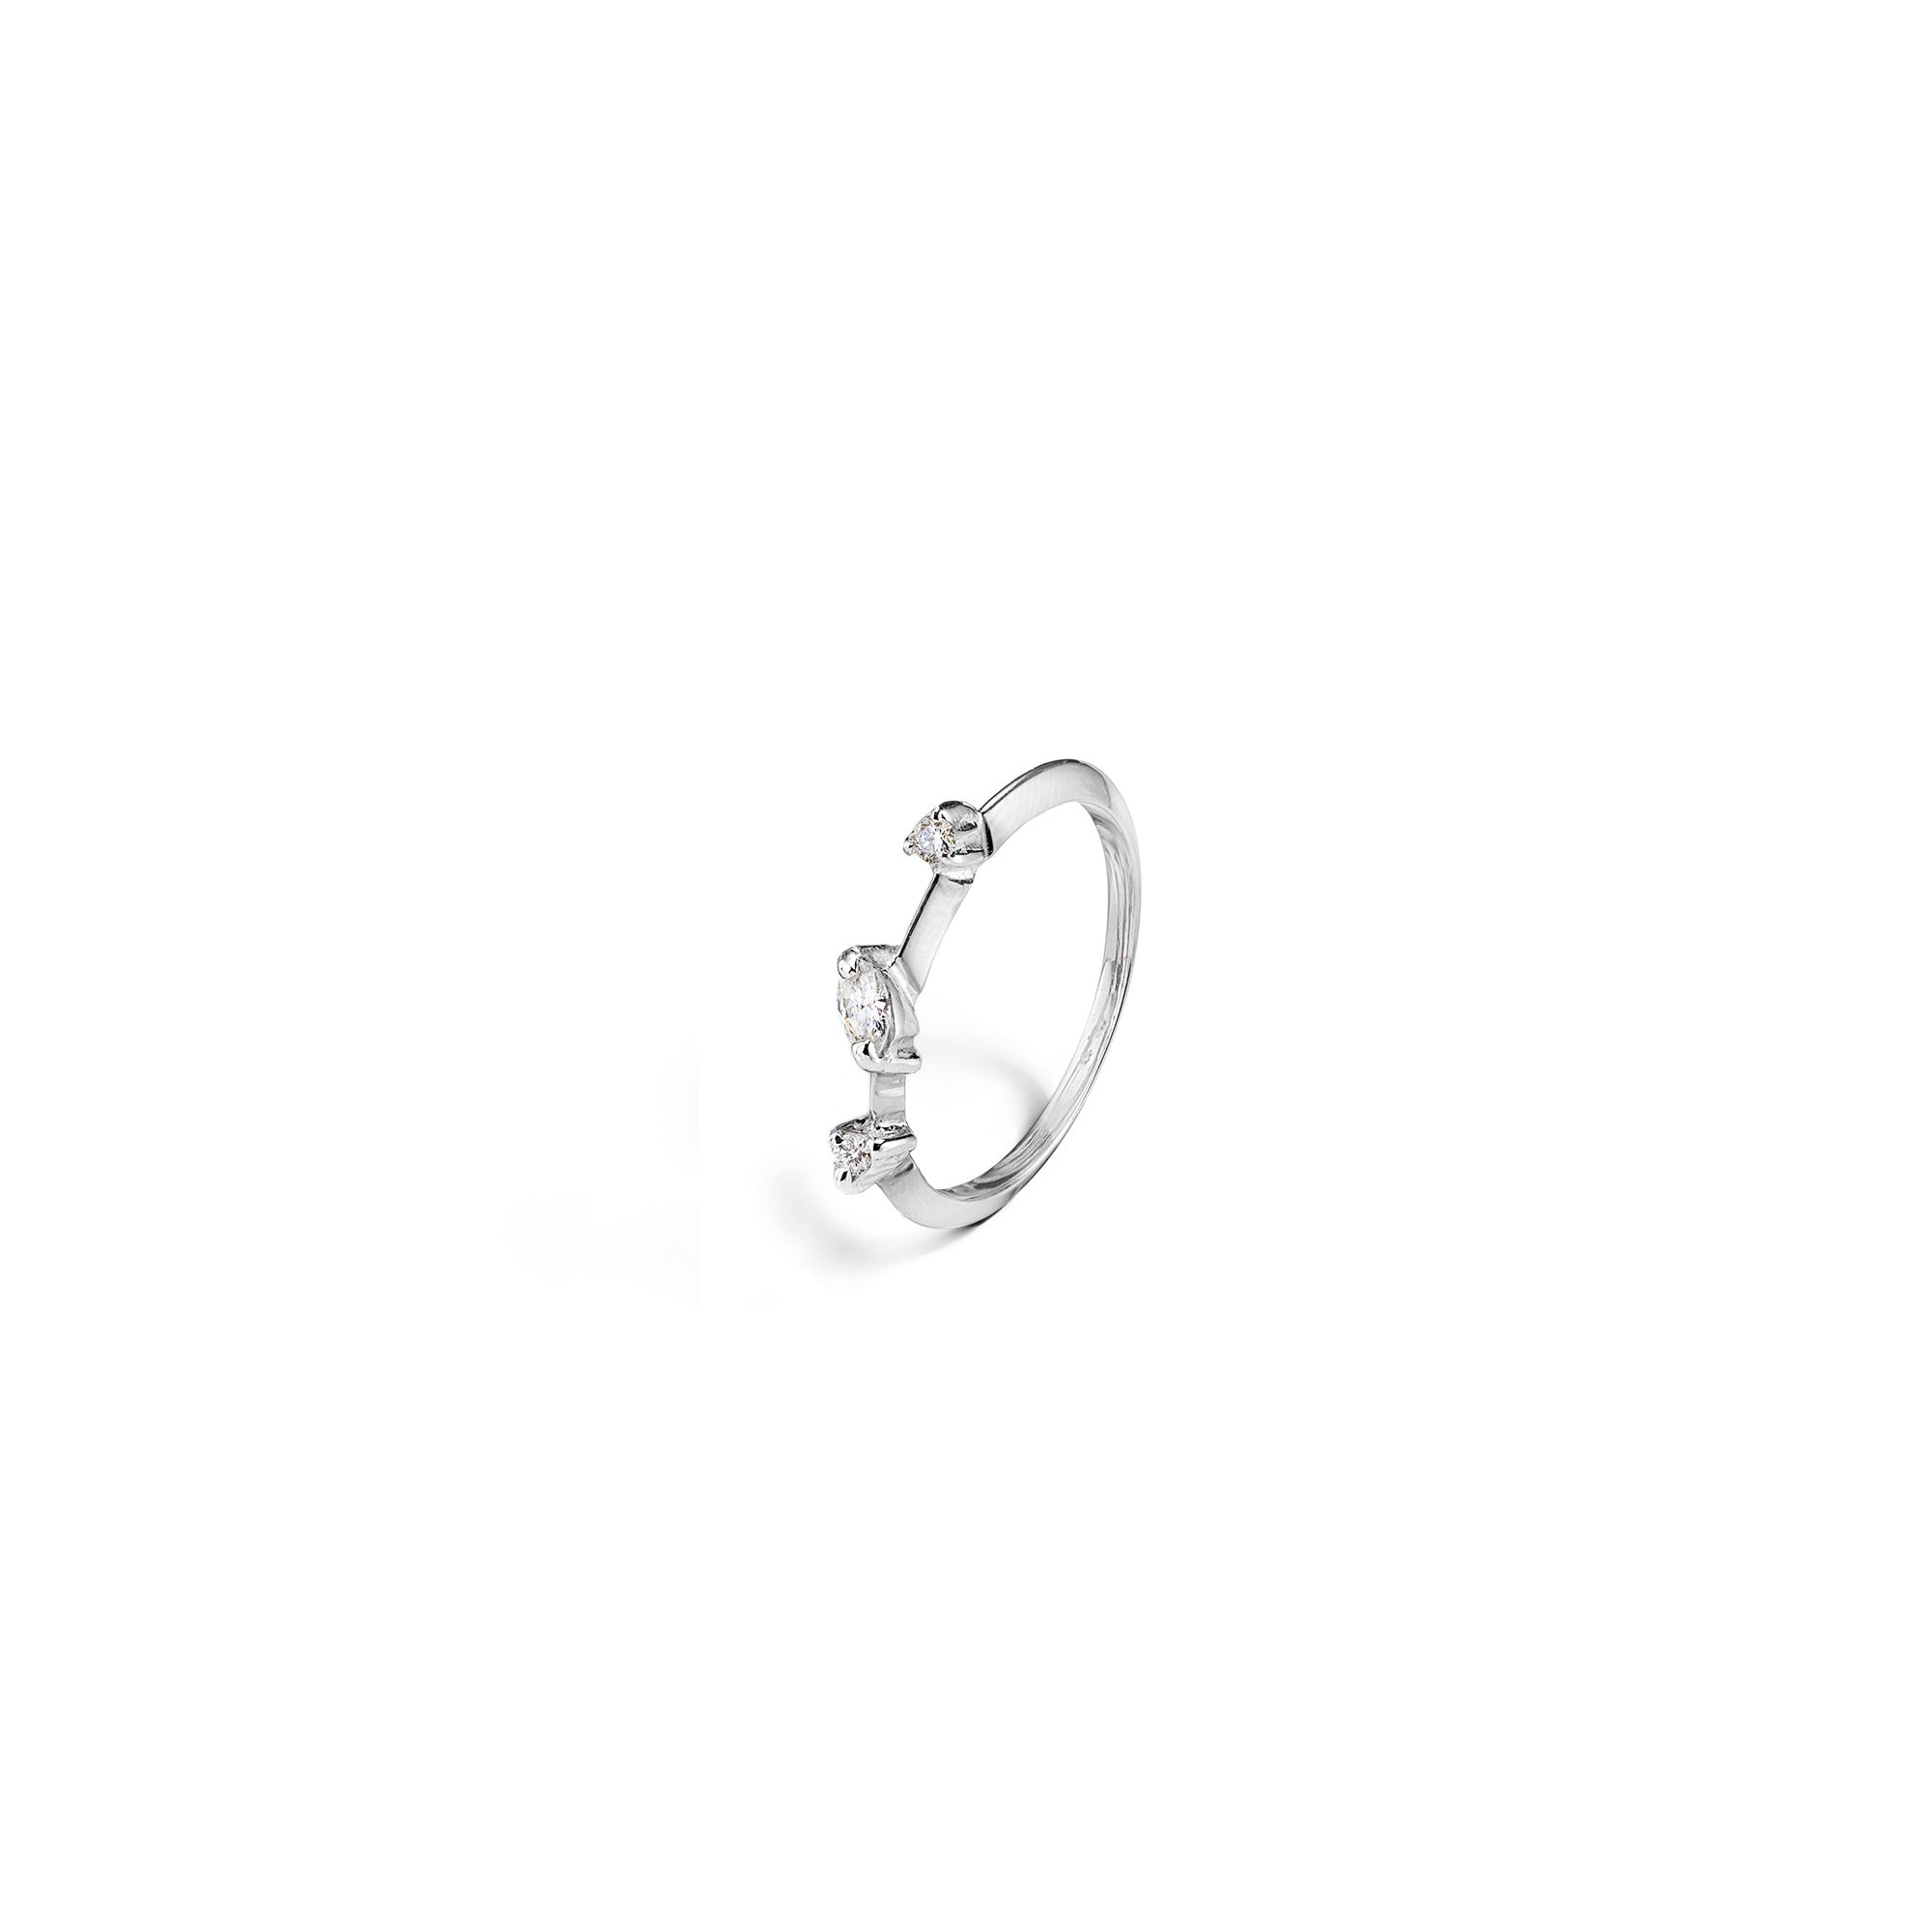 'Balance' white gold ring Ring in white gold and diamonds